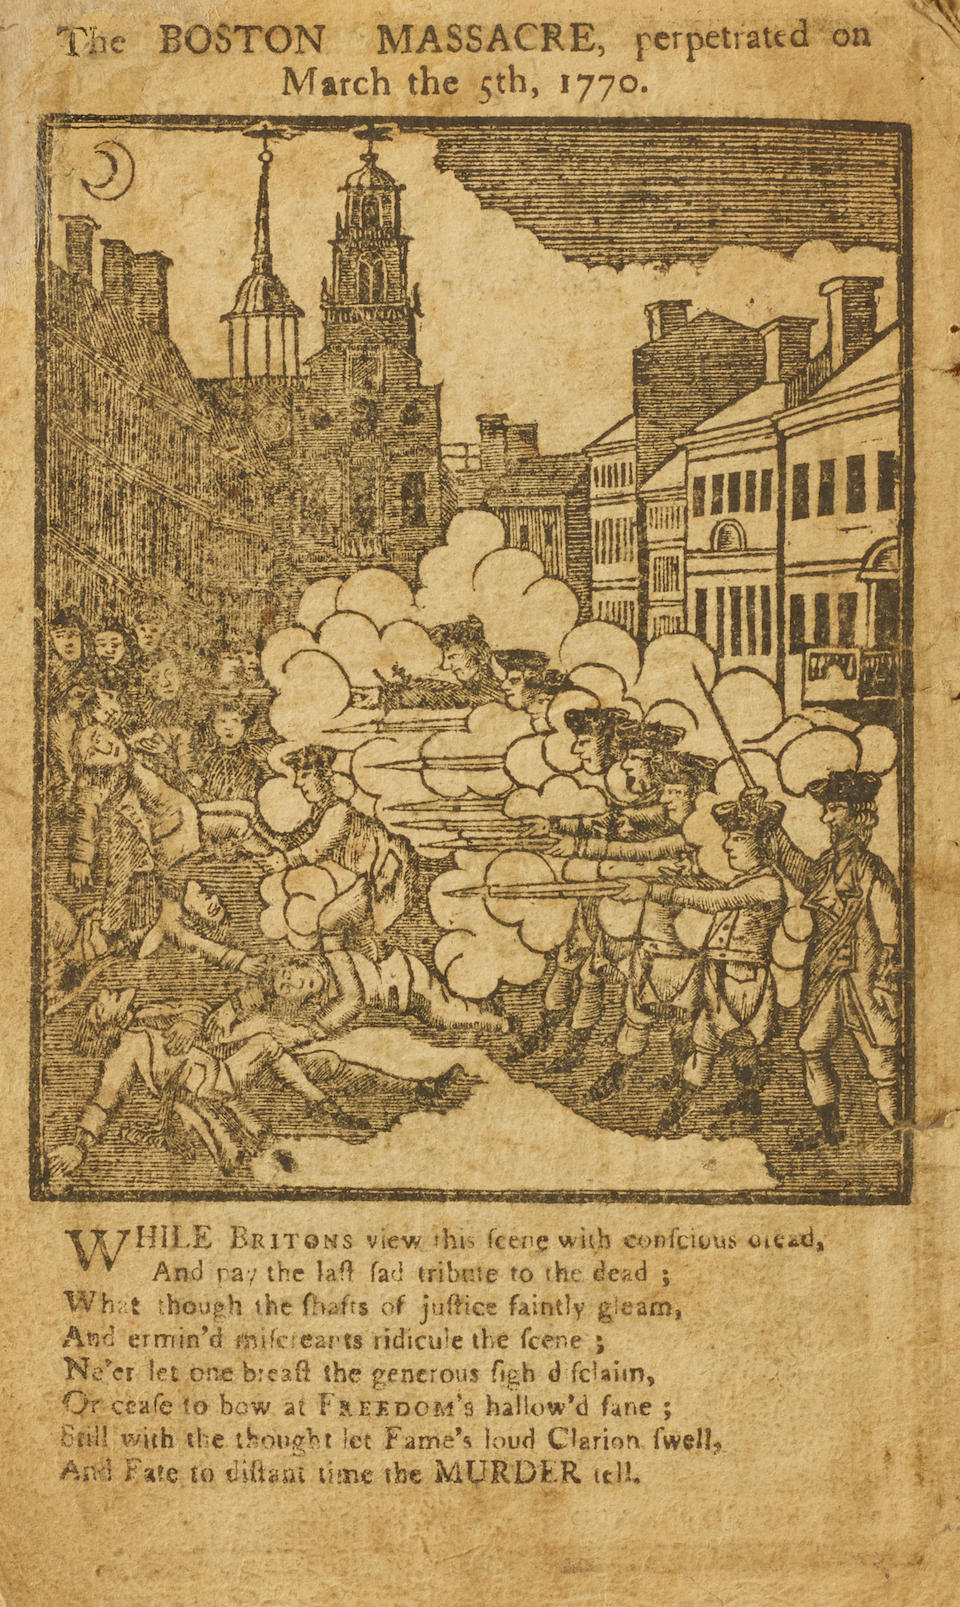 PAUL REVERE'S ENGRAVING OF THE BOSTON MASSACRE. REVERE, PAUL The Massachusetts Calendar, or an almanac for the Year of our Lord, 1772. Boston: Printed and Sold by Isaiah Thomas, et al, [1771].